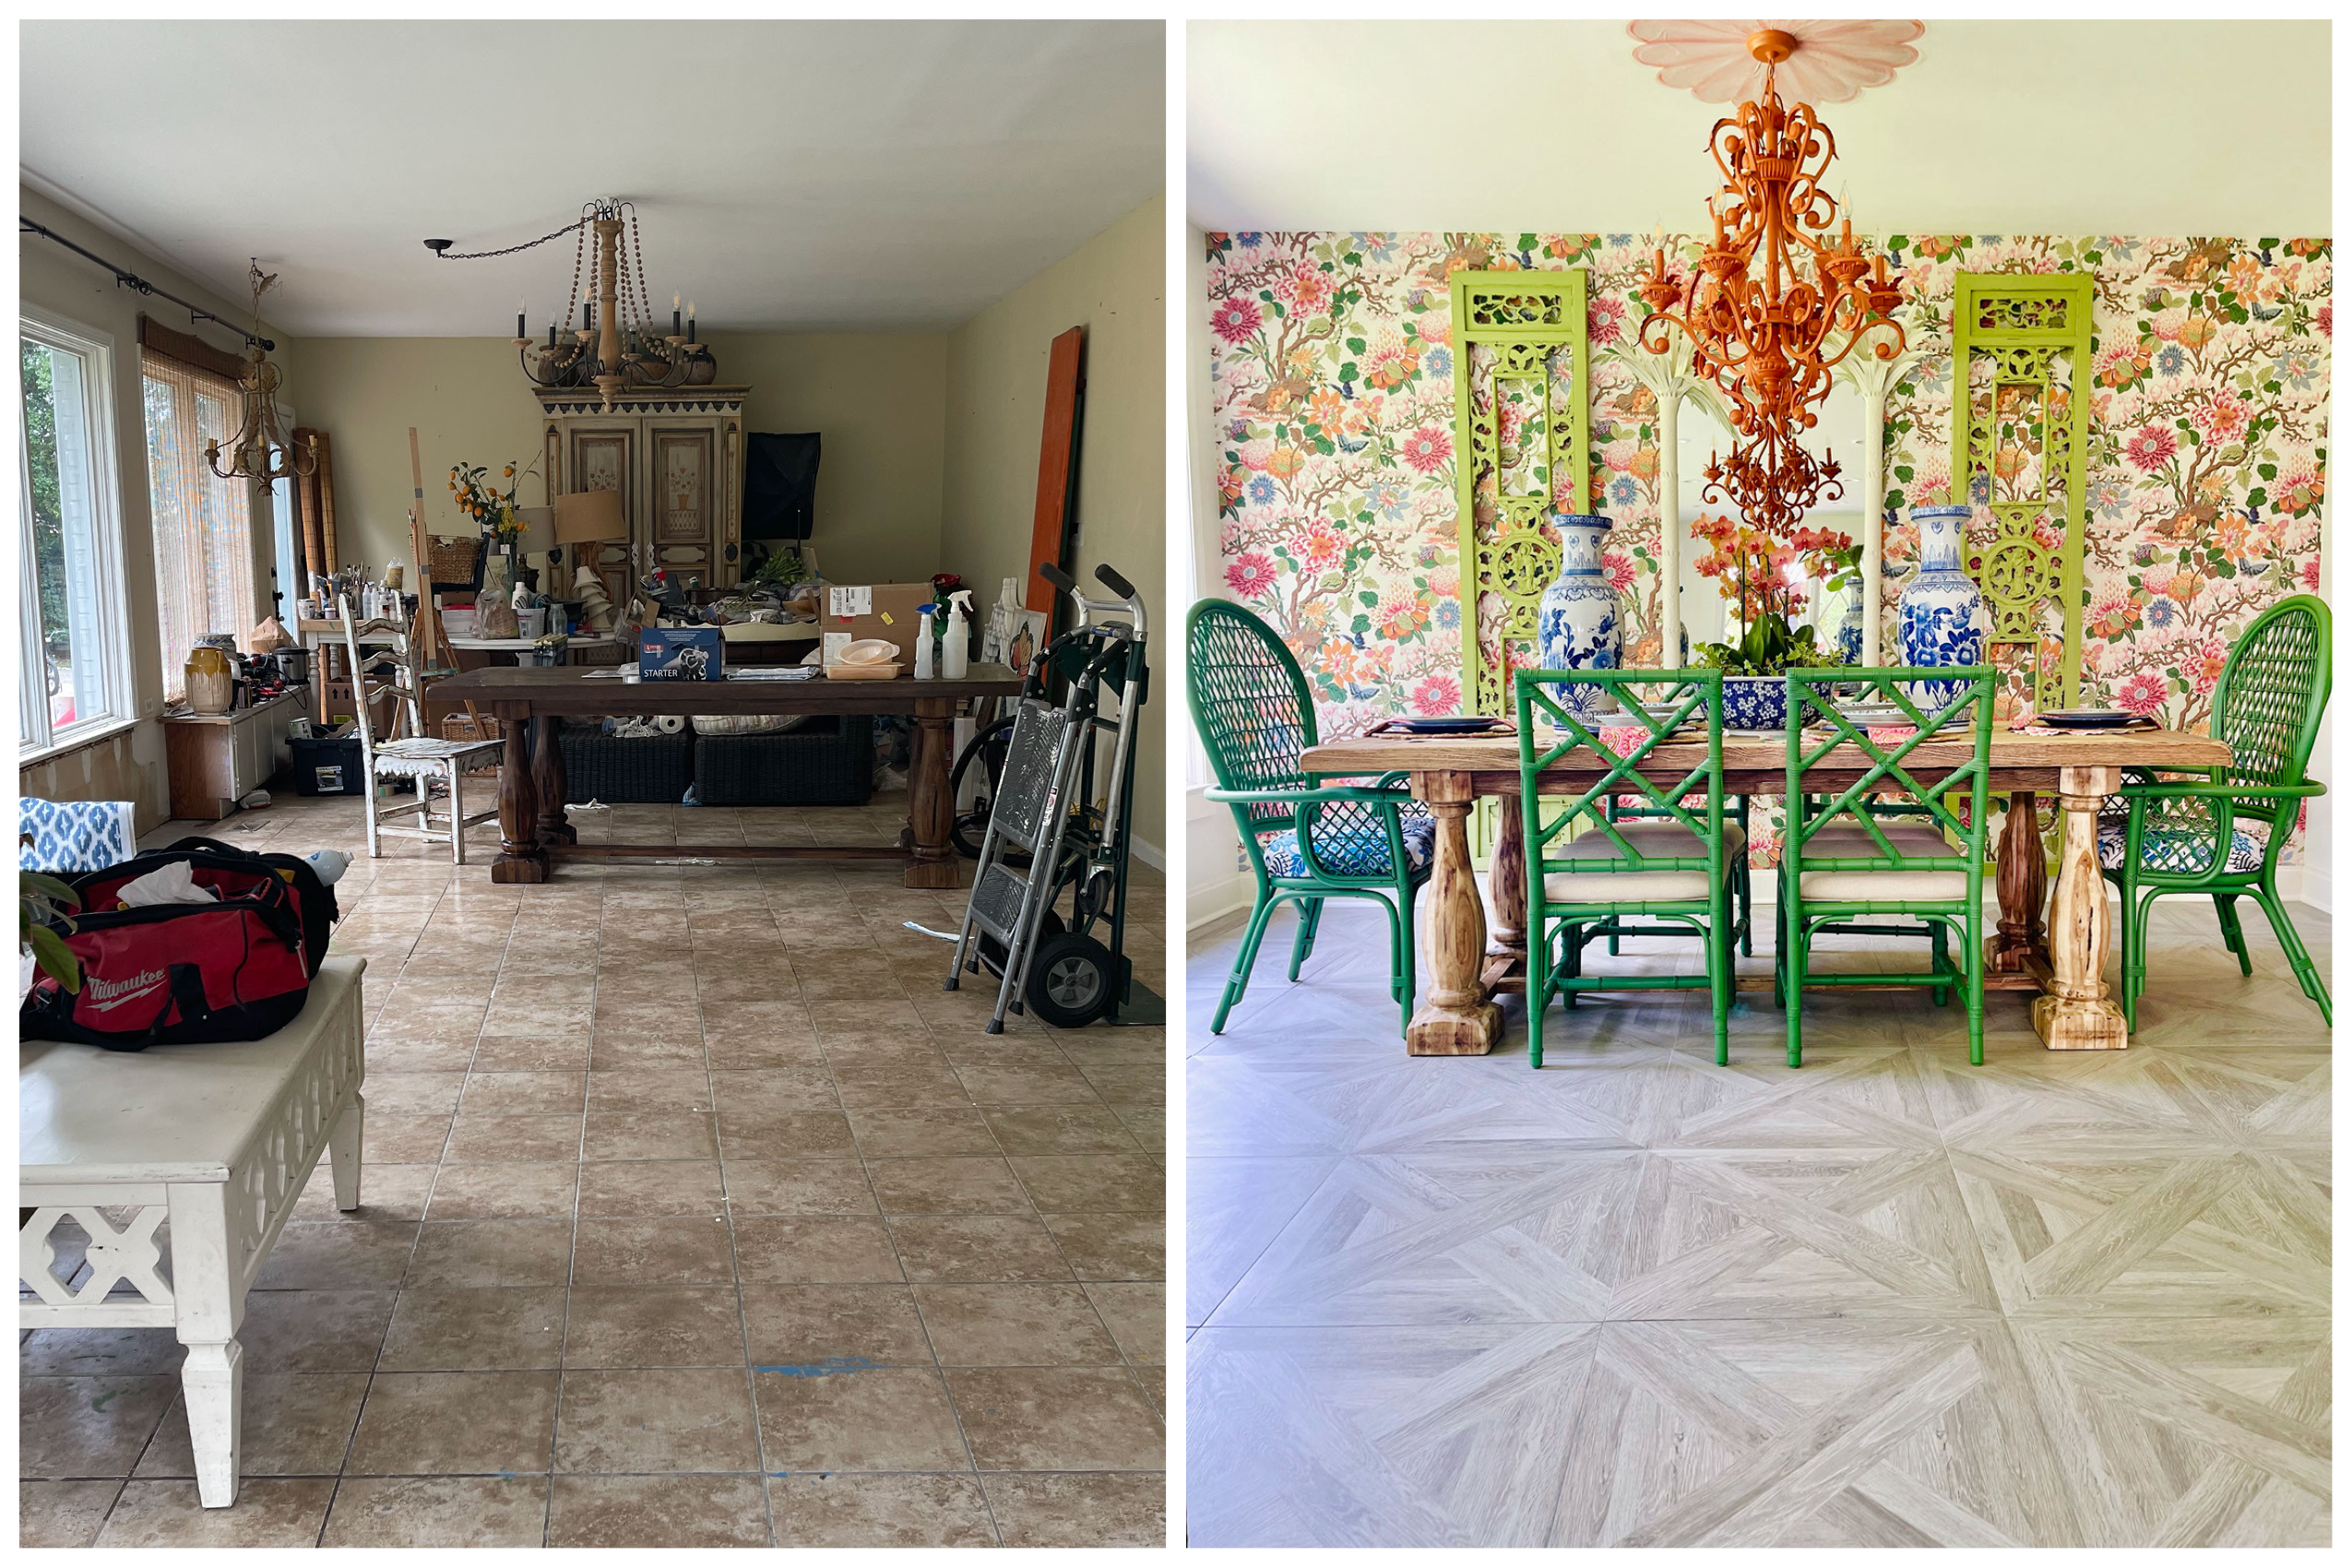 before and after of dining area with colorful floral wallpaper and green dining chairs